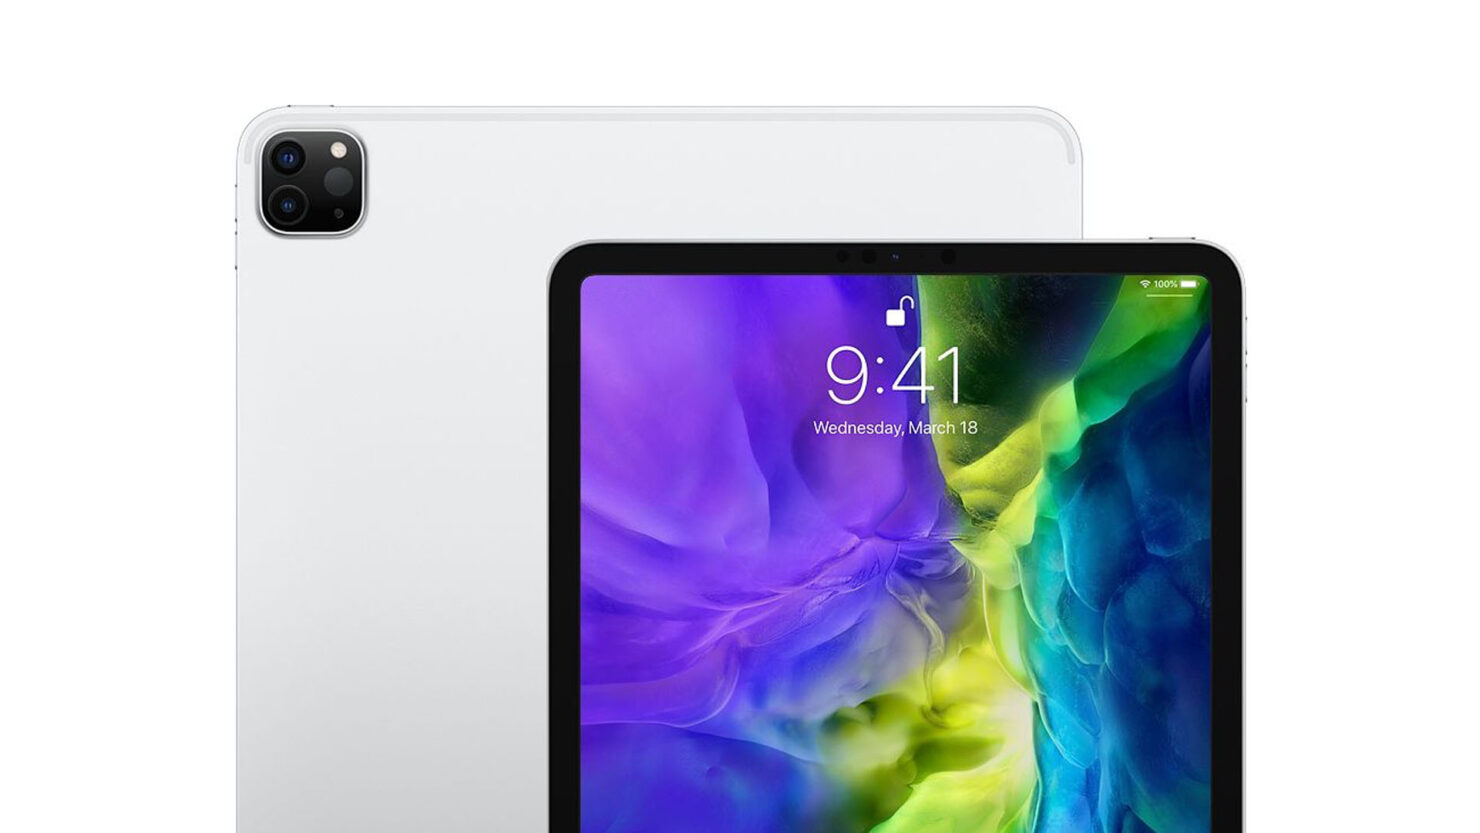 Refurbished 2020 iPad Pro Models Now Available From Apple, Prices Start From $609